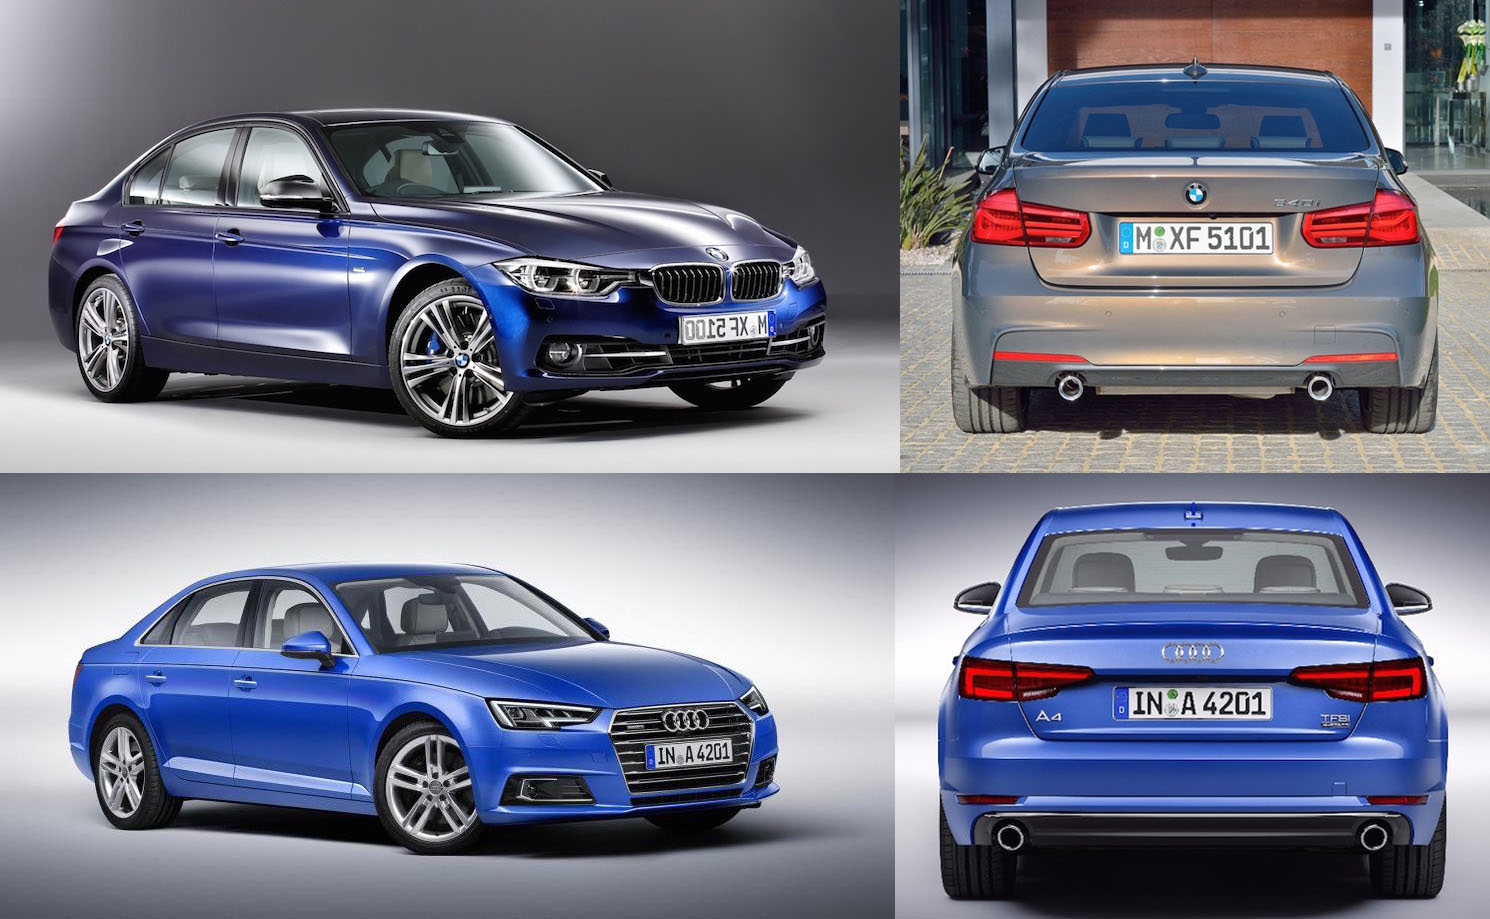 All New 2016 Audi A4 B9 Vs Bmw 3 Series F30 Lci